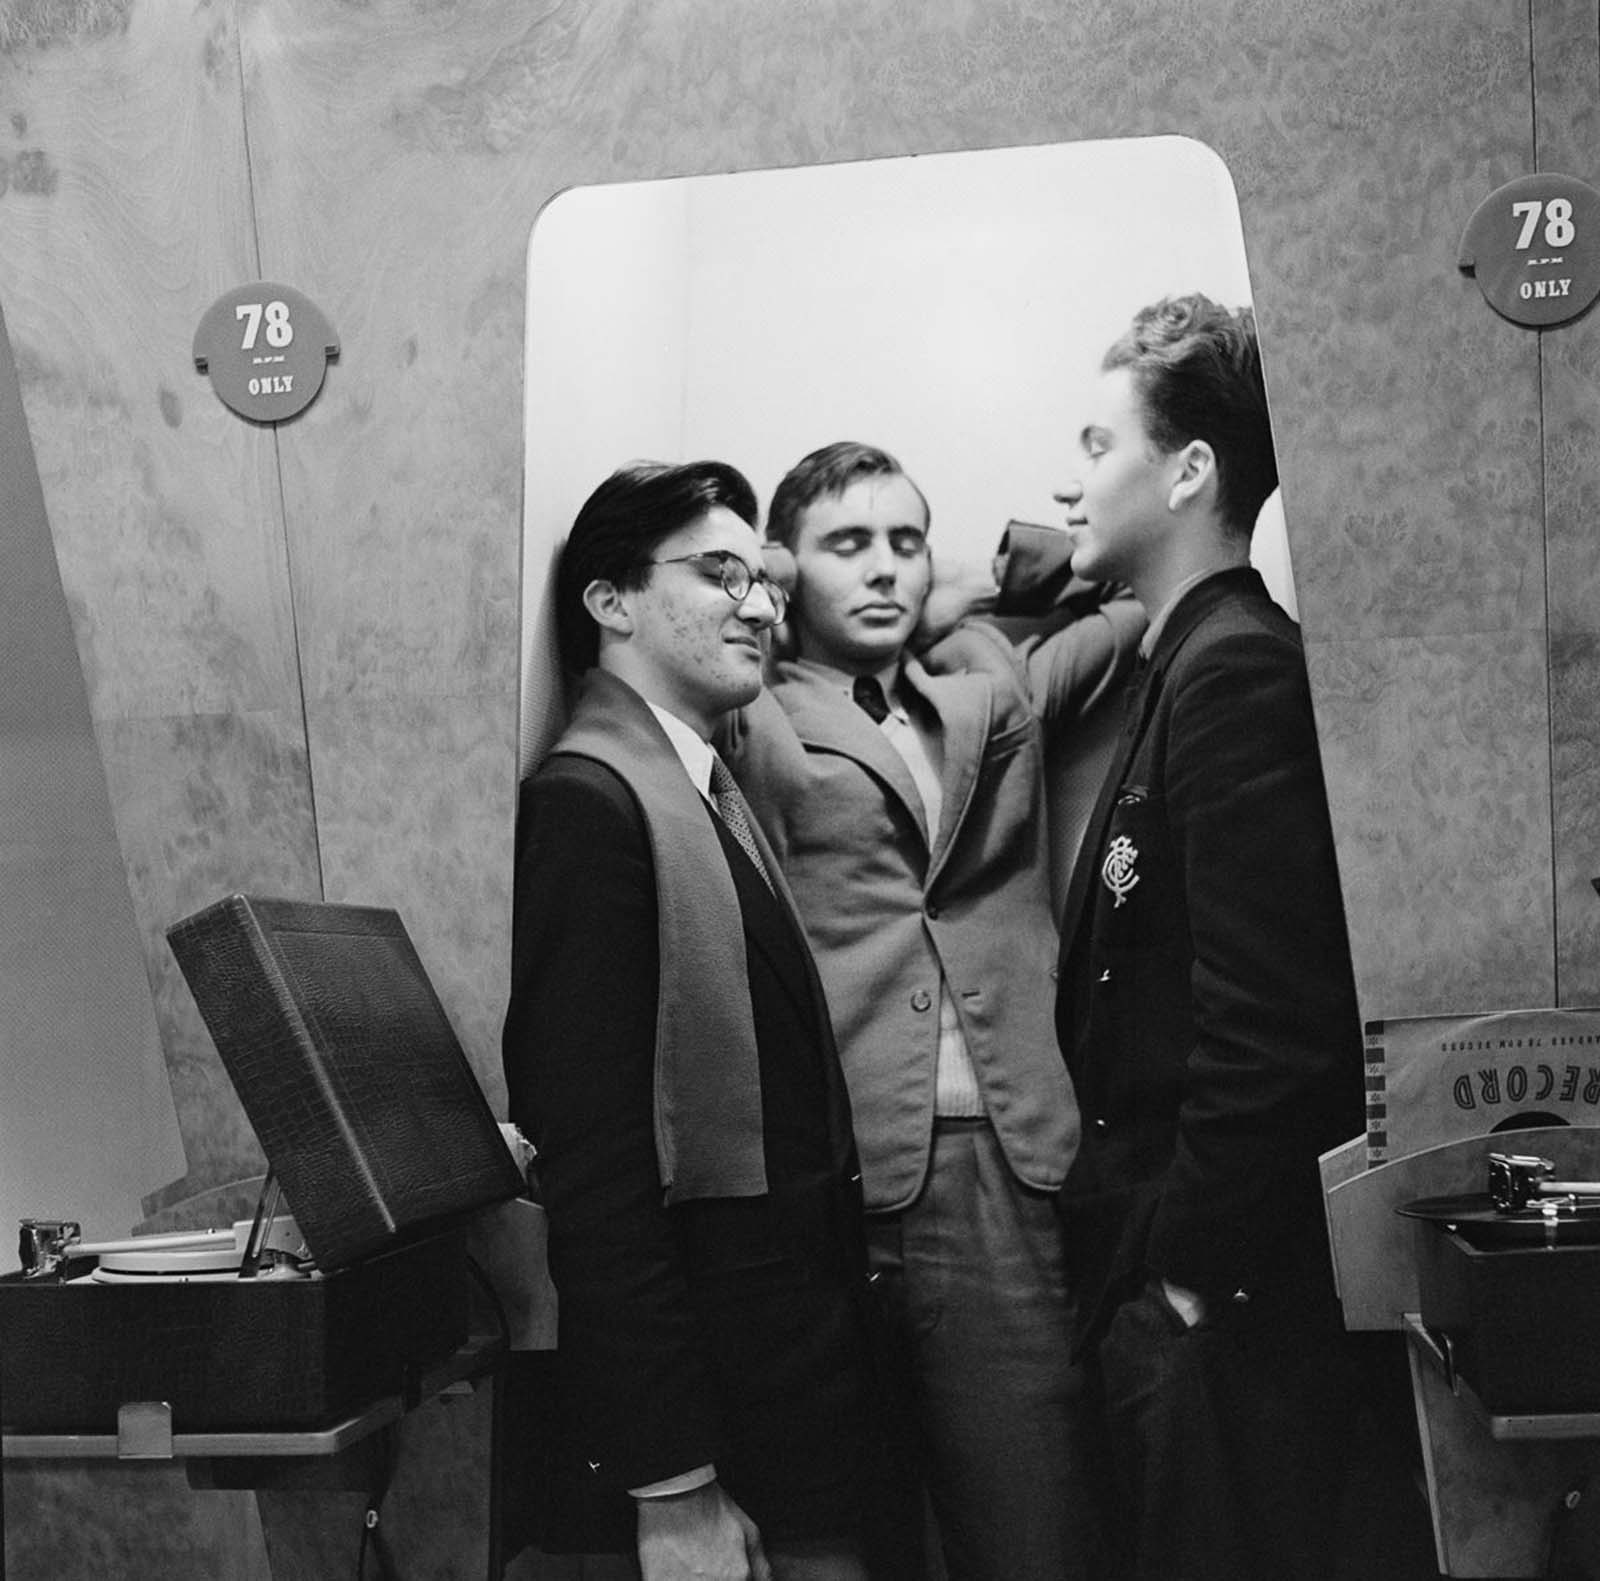 A group of friend enjoying music in a listening booth. 1955.